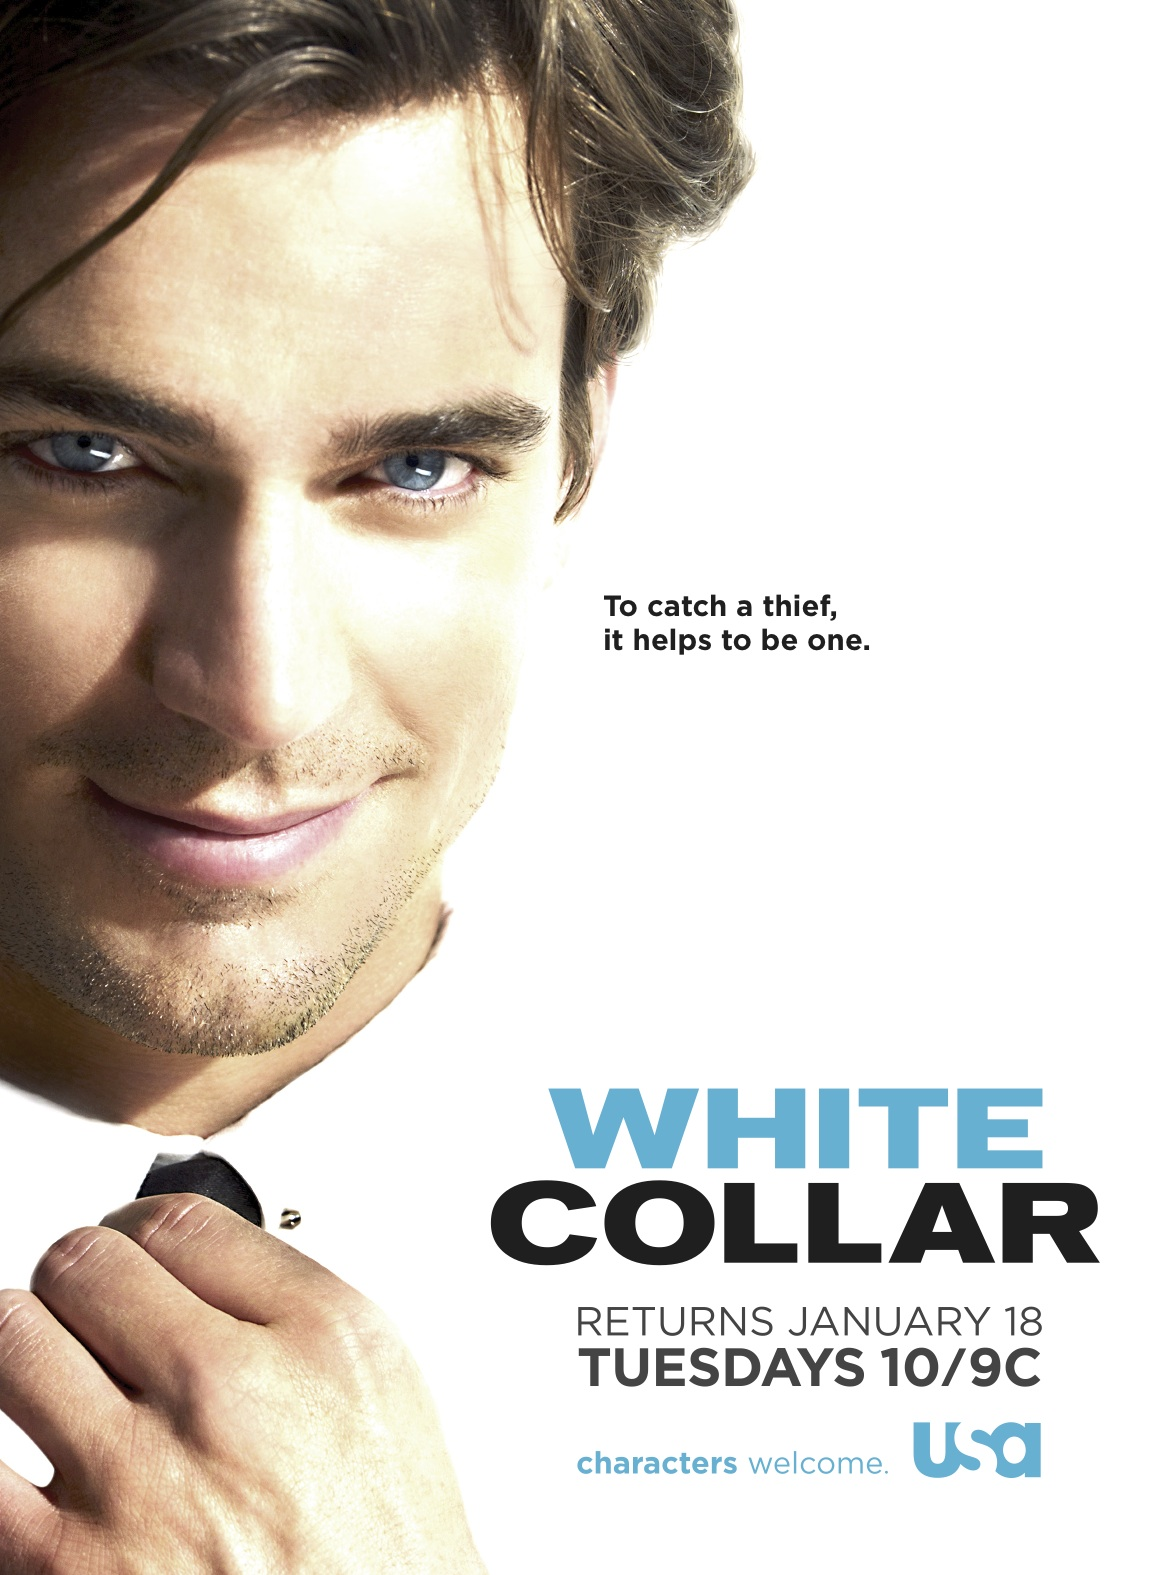 white colar crimes The white collar crime committee takes a leadership role in furthering  awareness and knowledge on pressing white collar crime issues to.